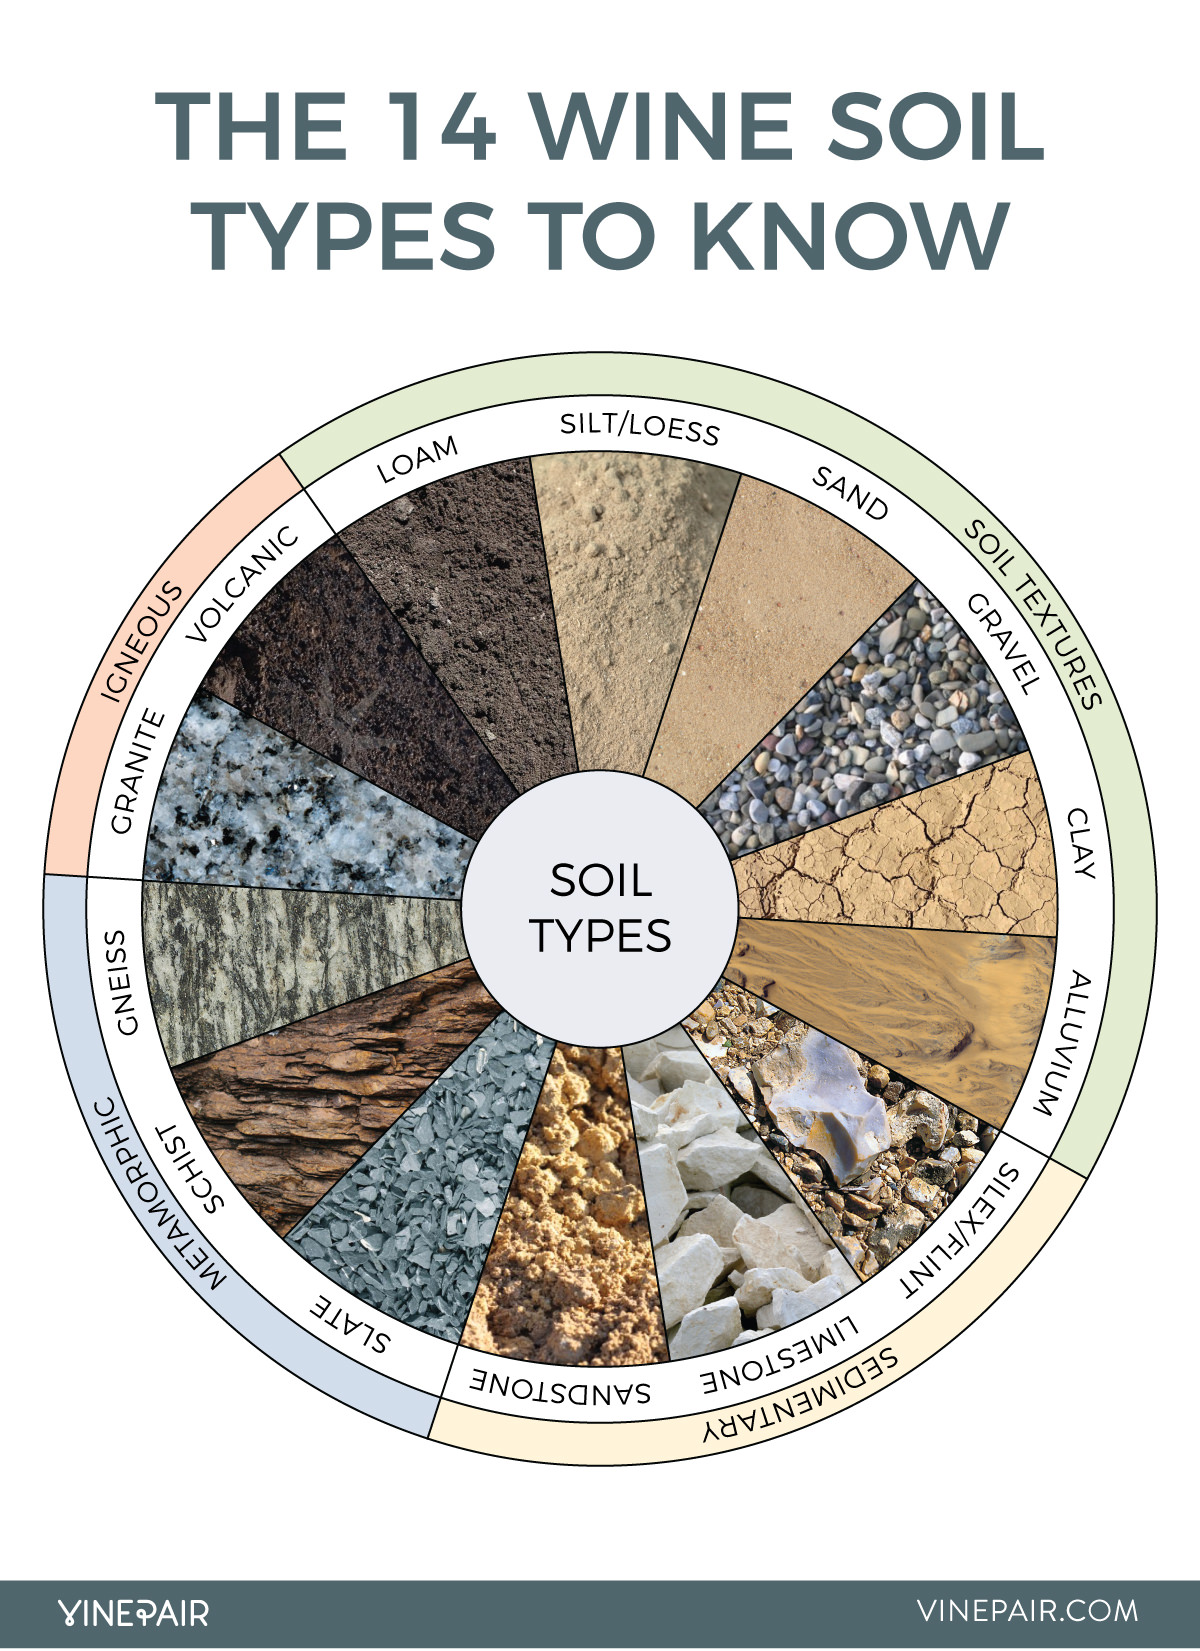 An Illustrated Guide To The Most Important Wine Soils You